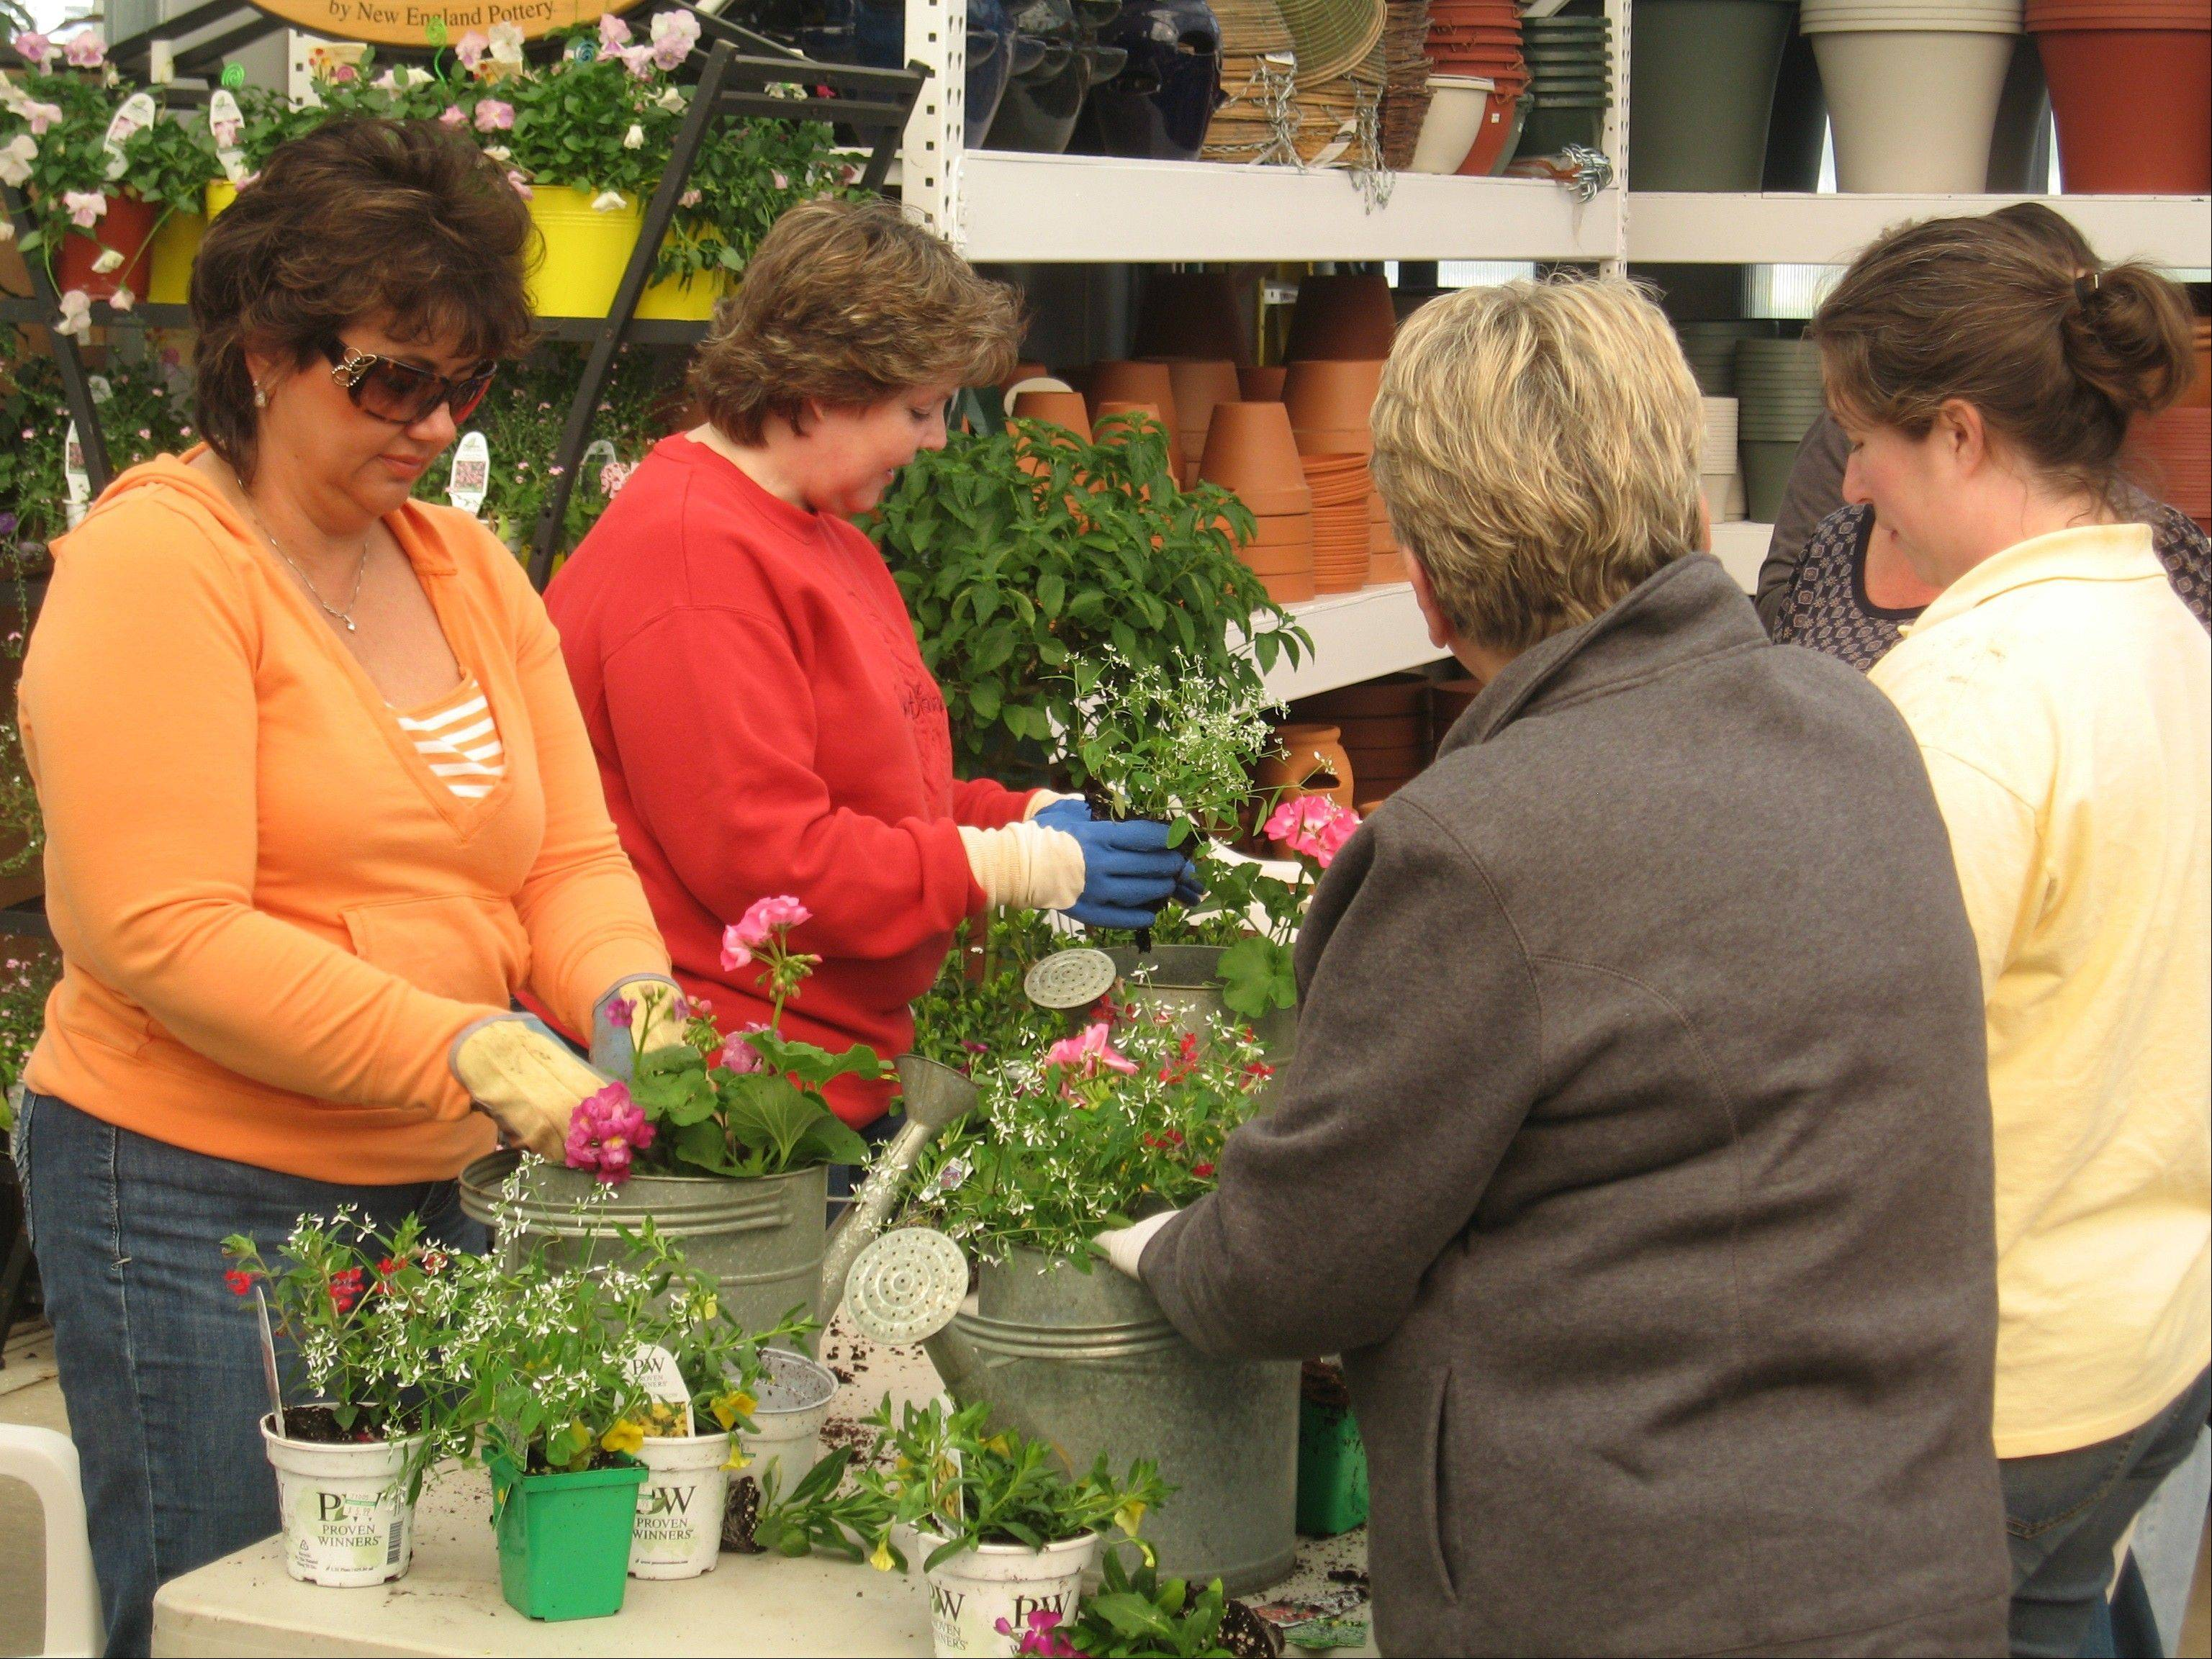 Knupper Nursery conducts gardening classes on Saturdays during the growing season so homeowners get the most out of plants they buy.